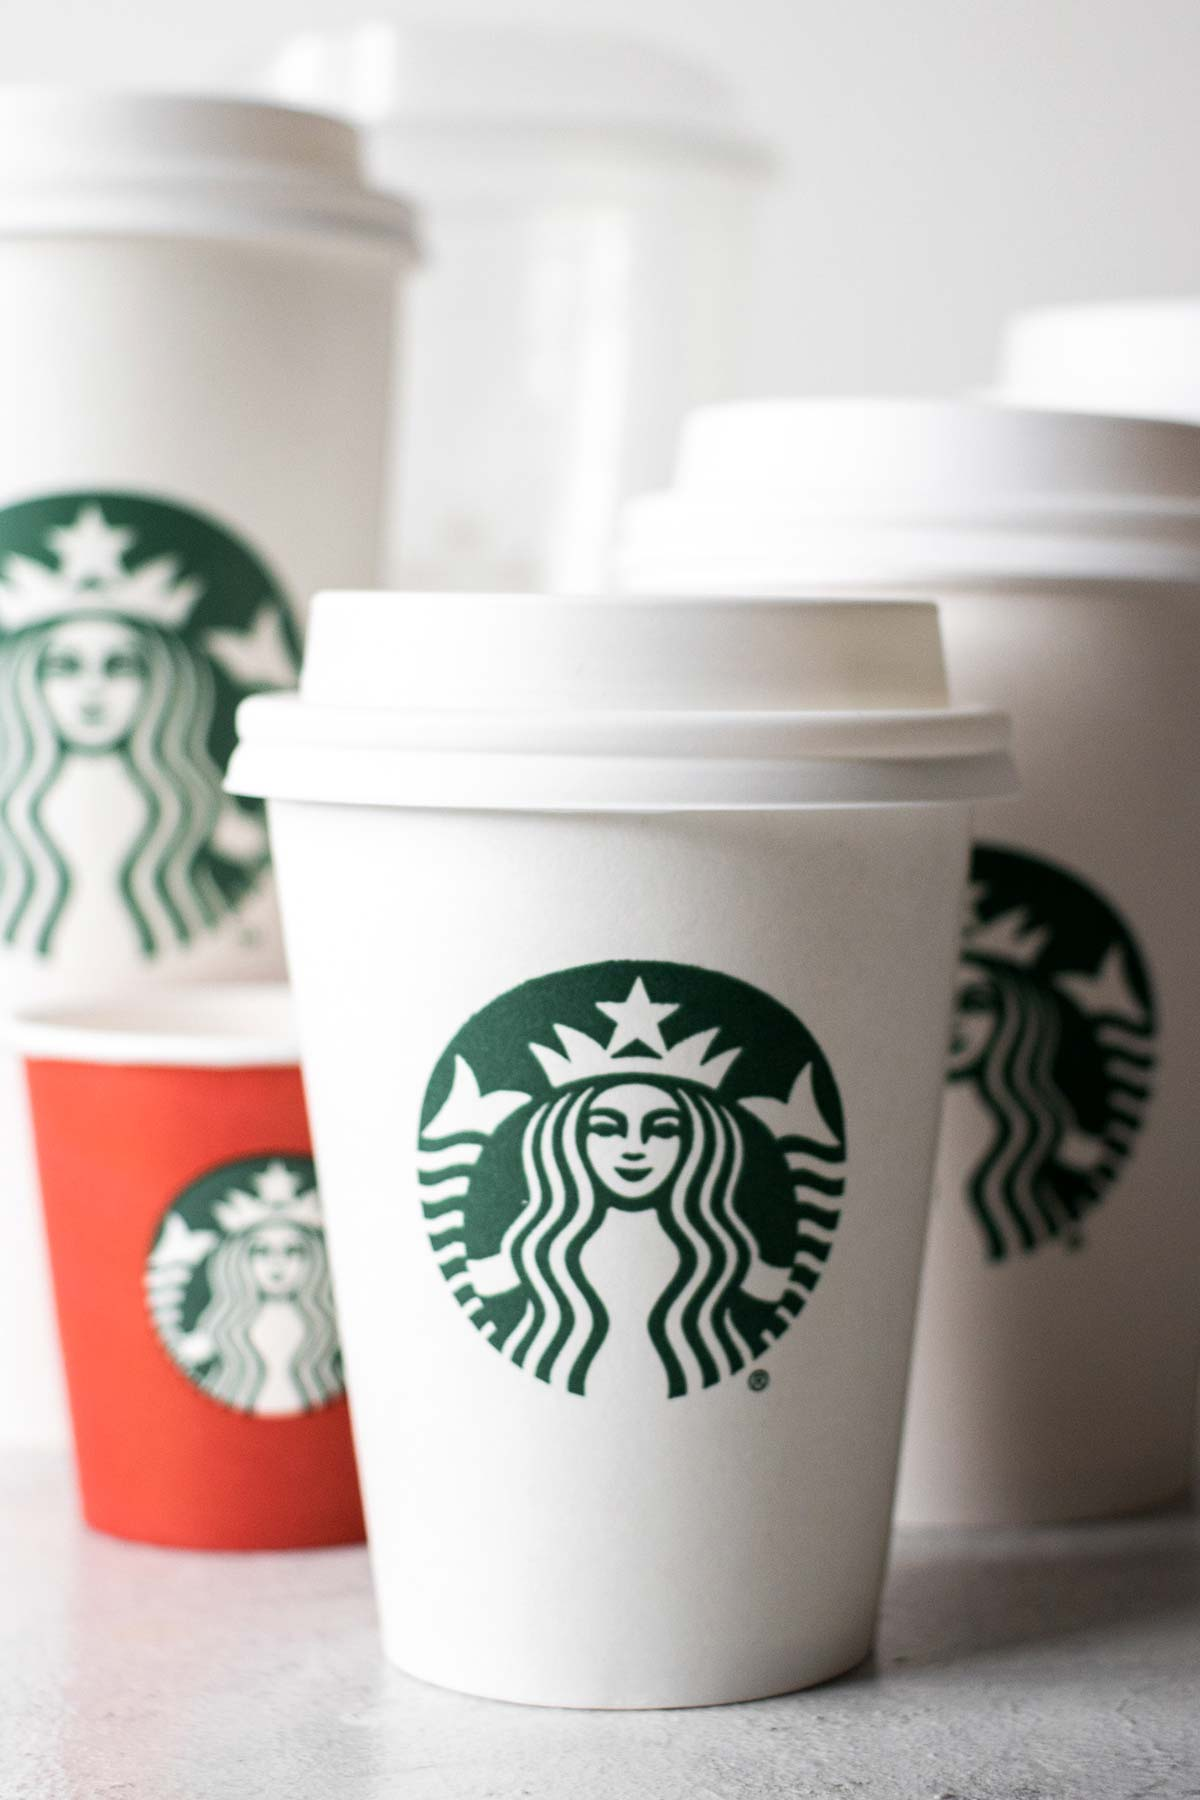 Starbucks cups in different sizes.